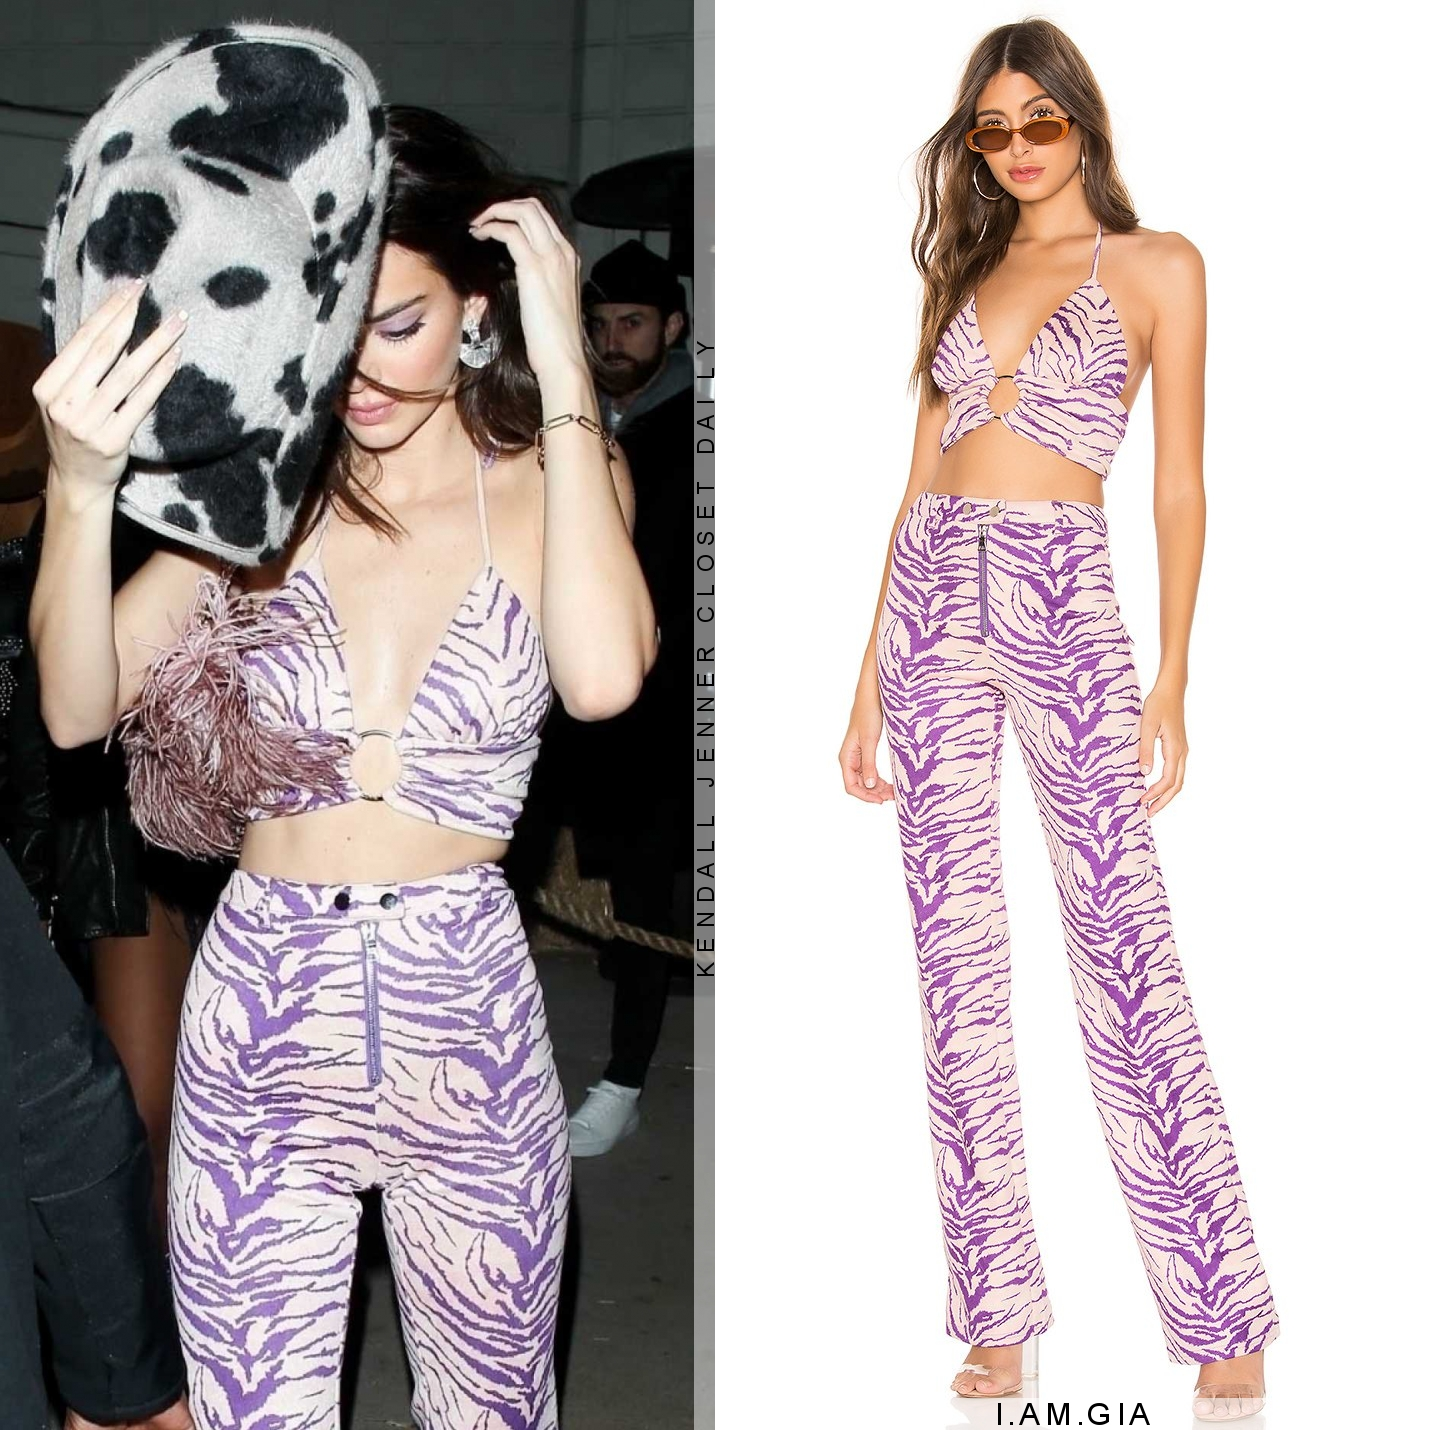 Kendall Jenner sizzled in Straight fit I. AM. GIA purple zebra printed pants with striped